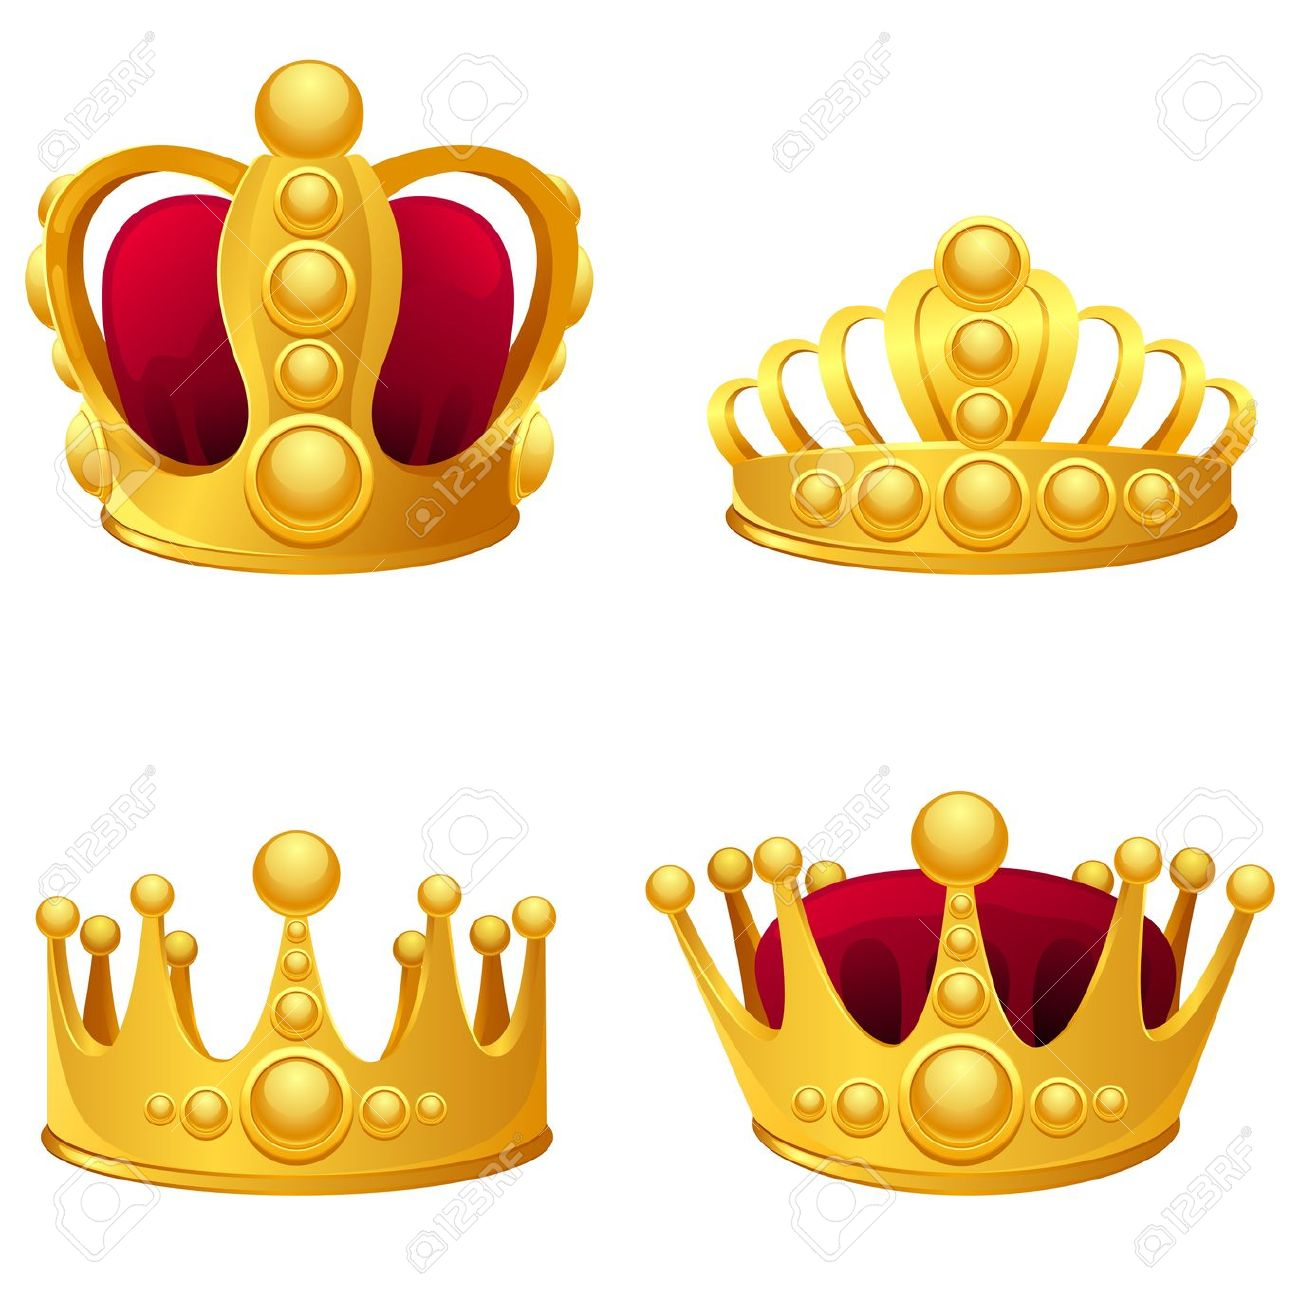 King and queen crown clipart 3 » Clipart Station.